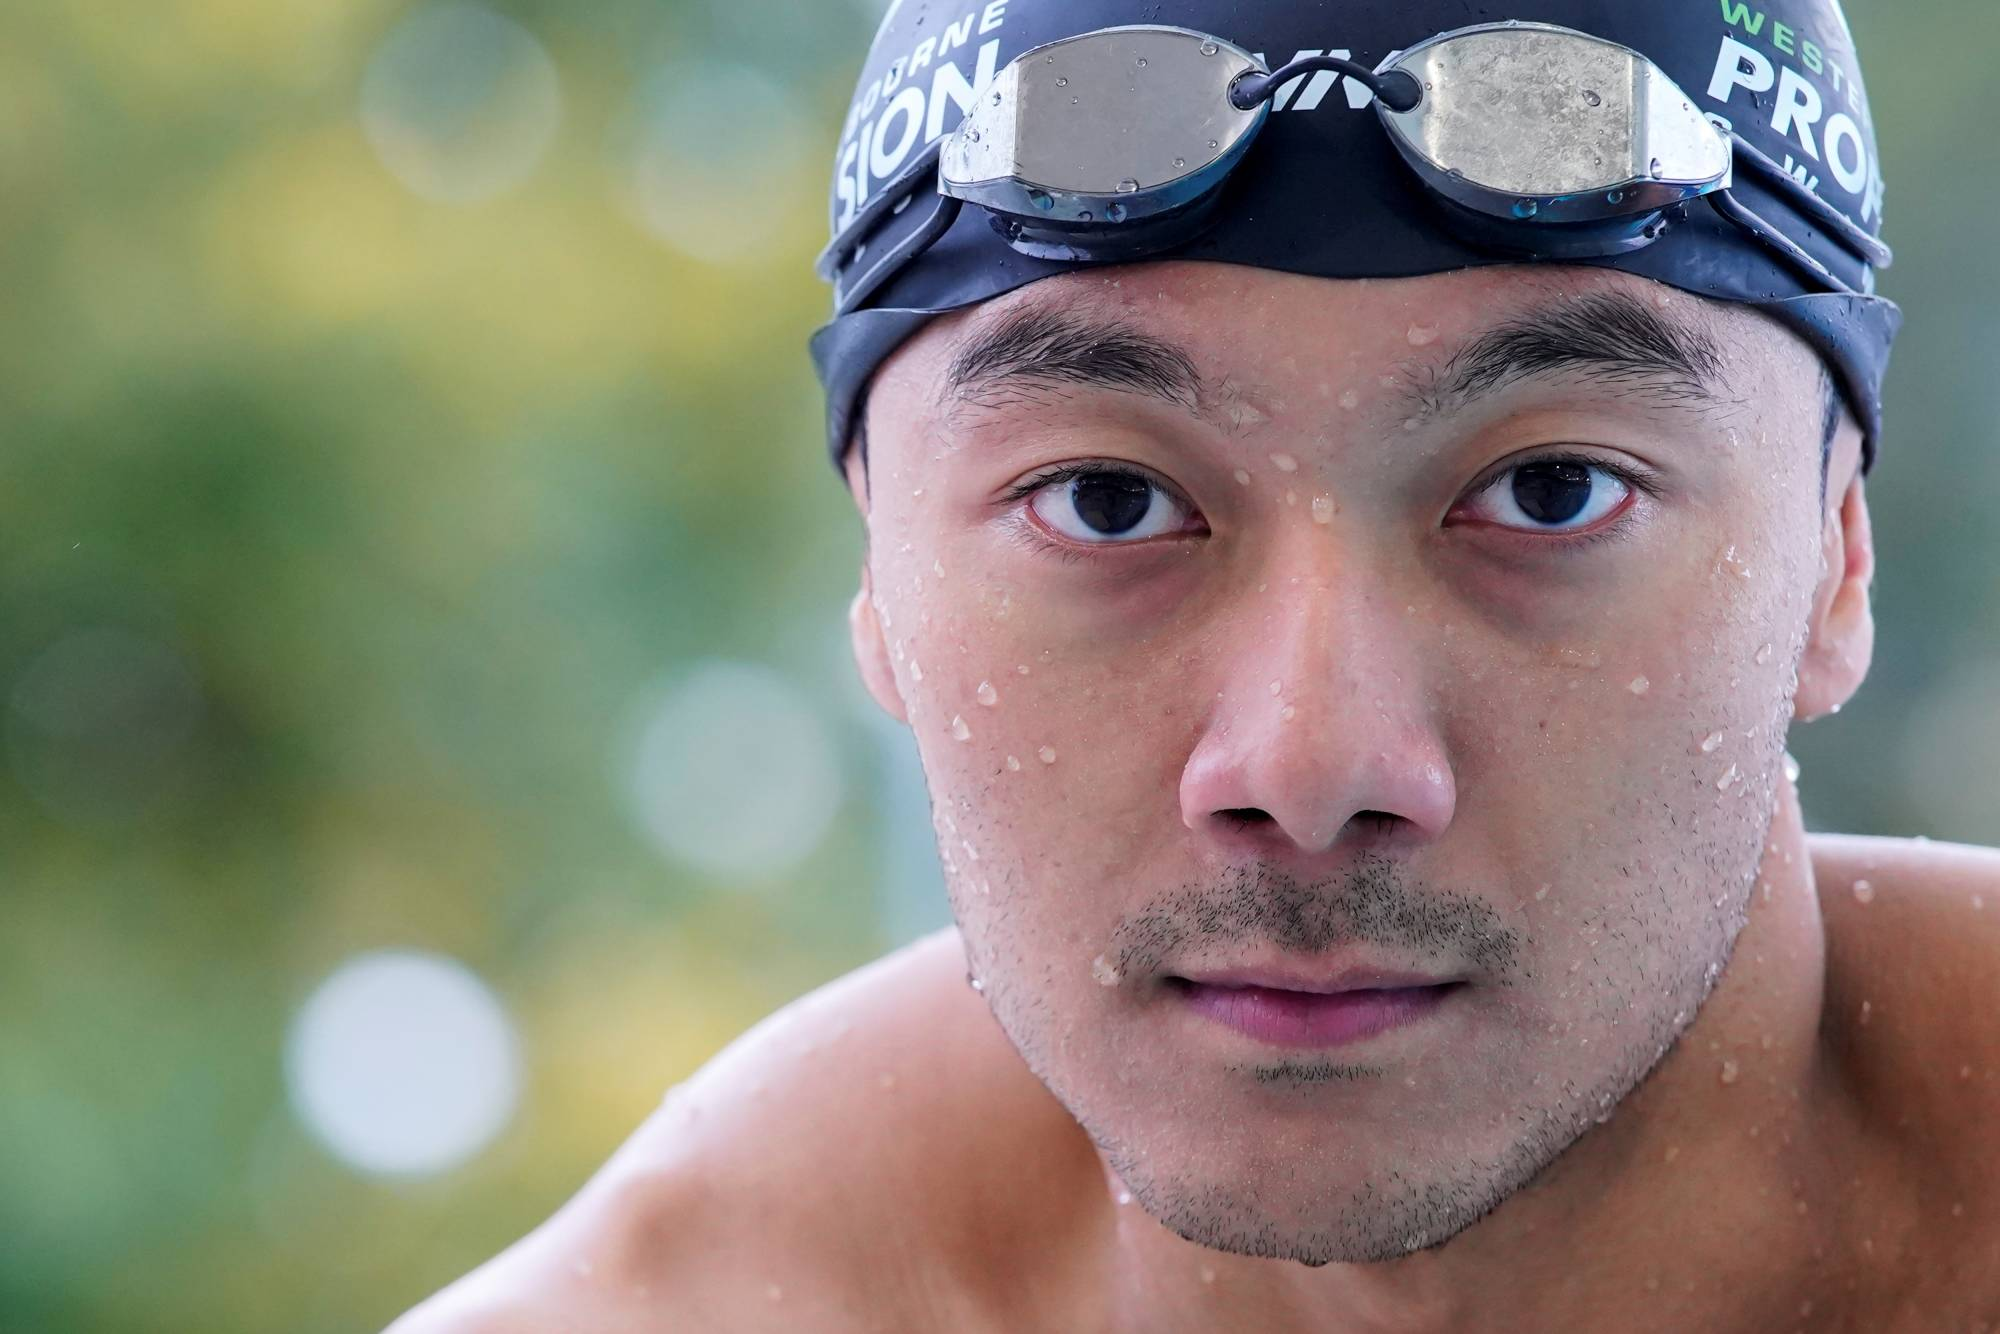 Myanmar swimmer Win Htet Oo boycotted the Tokyo 2020 Olympic Games to protest the military junta ruling the country.   REUTERS